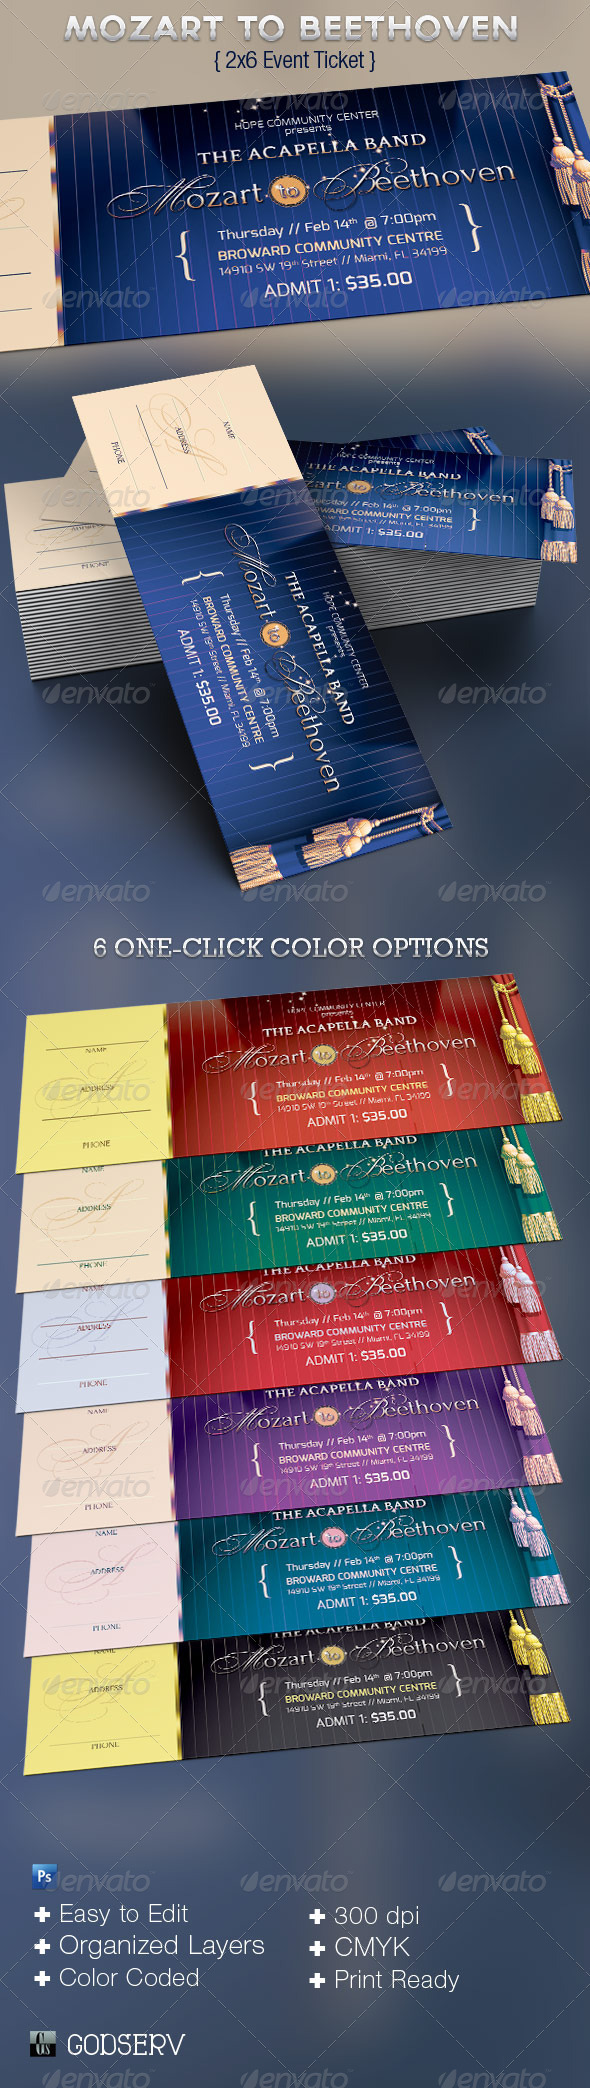 mozart to beethoven event ticket template graphicriver. Black Bedroom Furniture Sets. Home Design Ideas